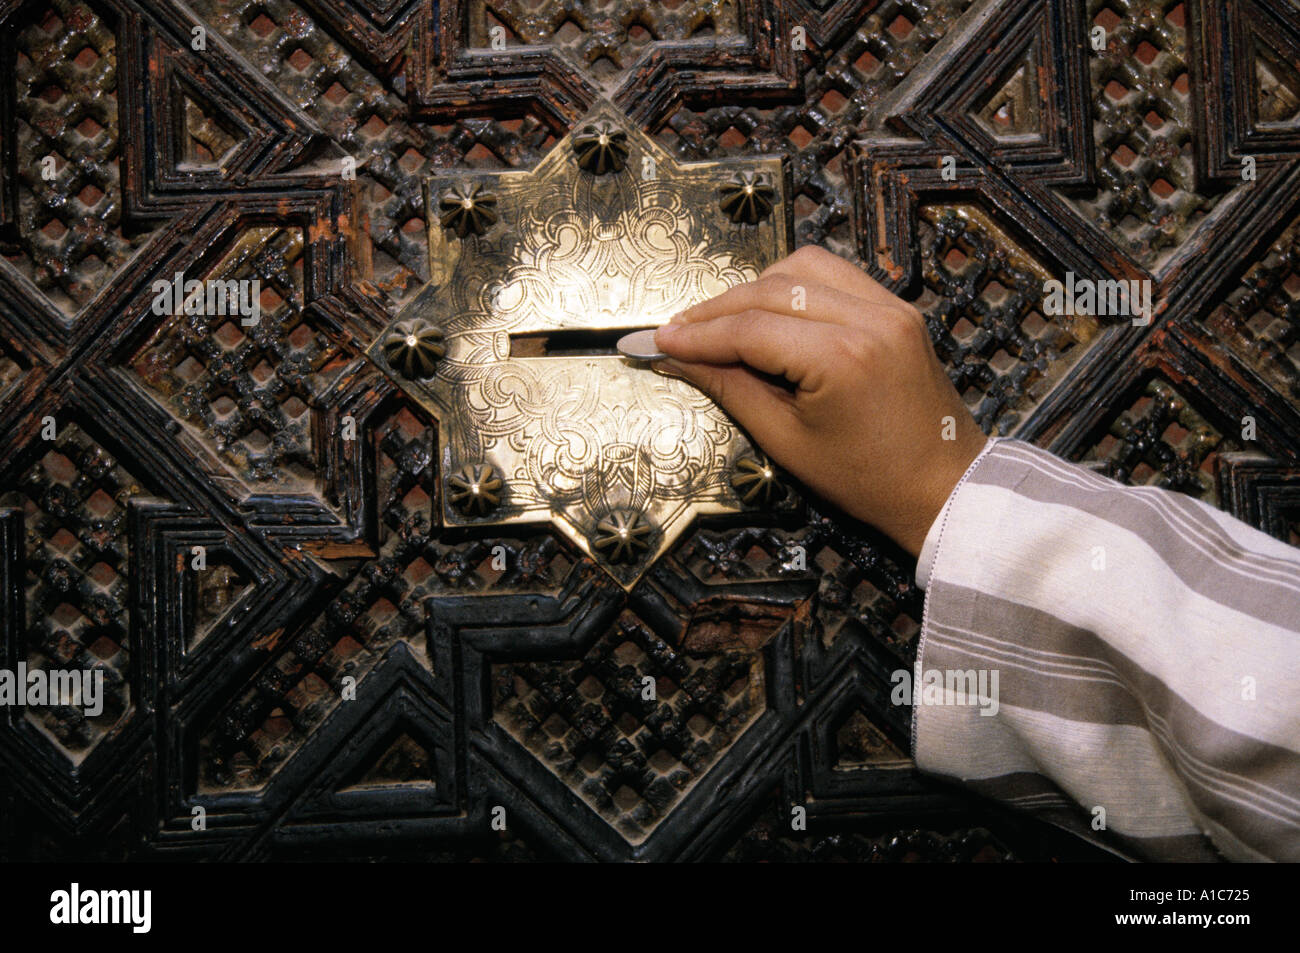 Zakat or giving alms is one of the major tenets of Islam - Stock Image